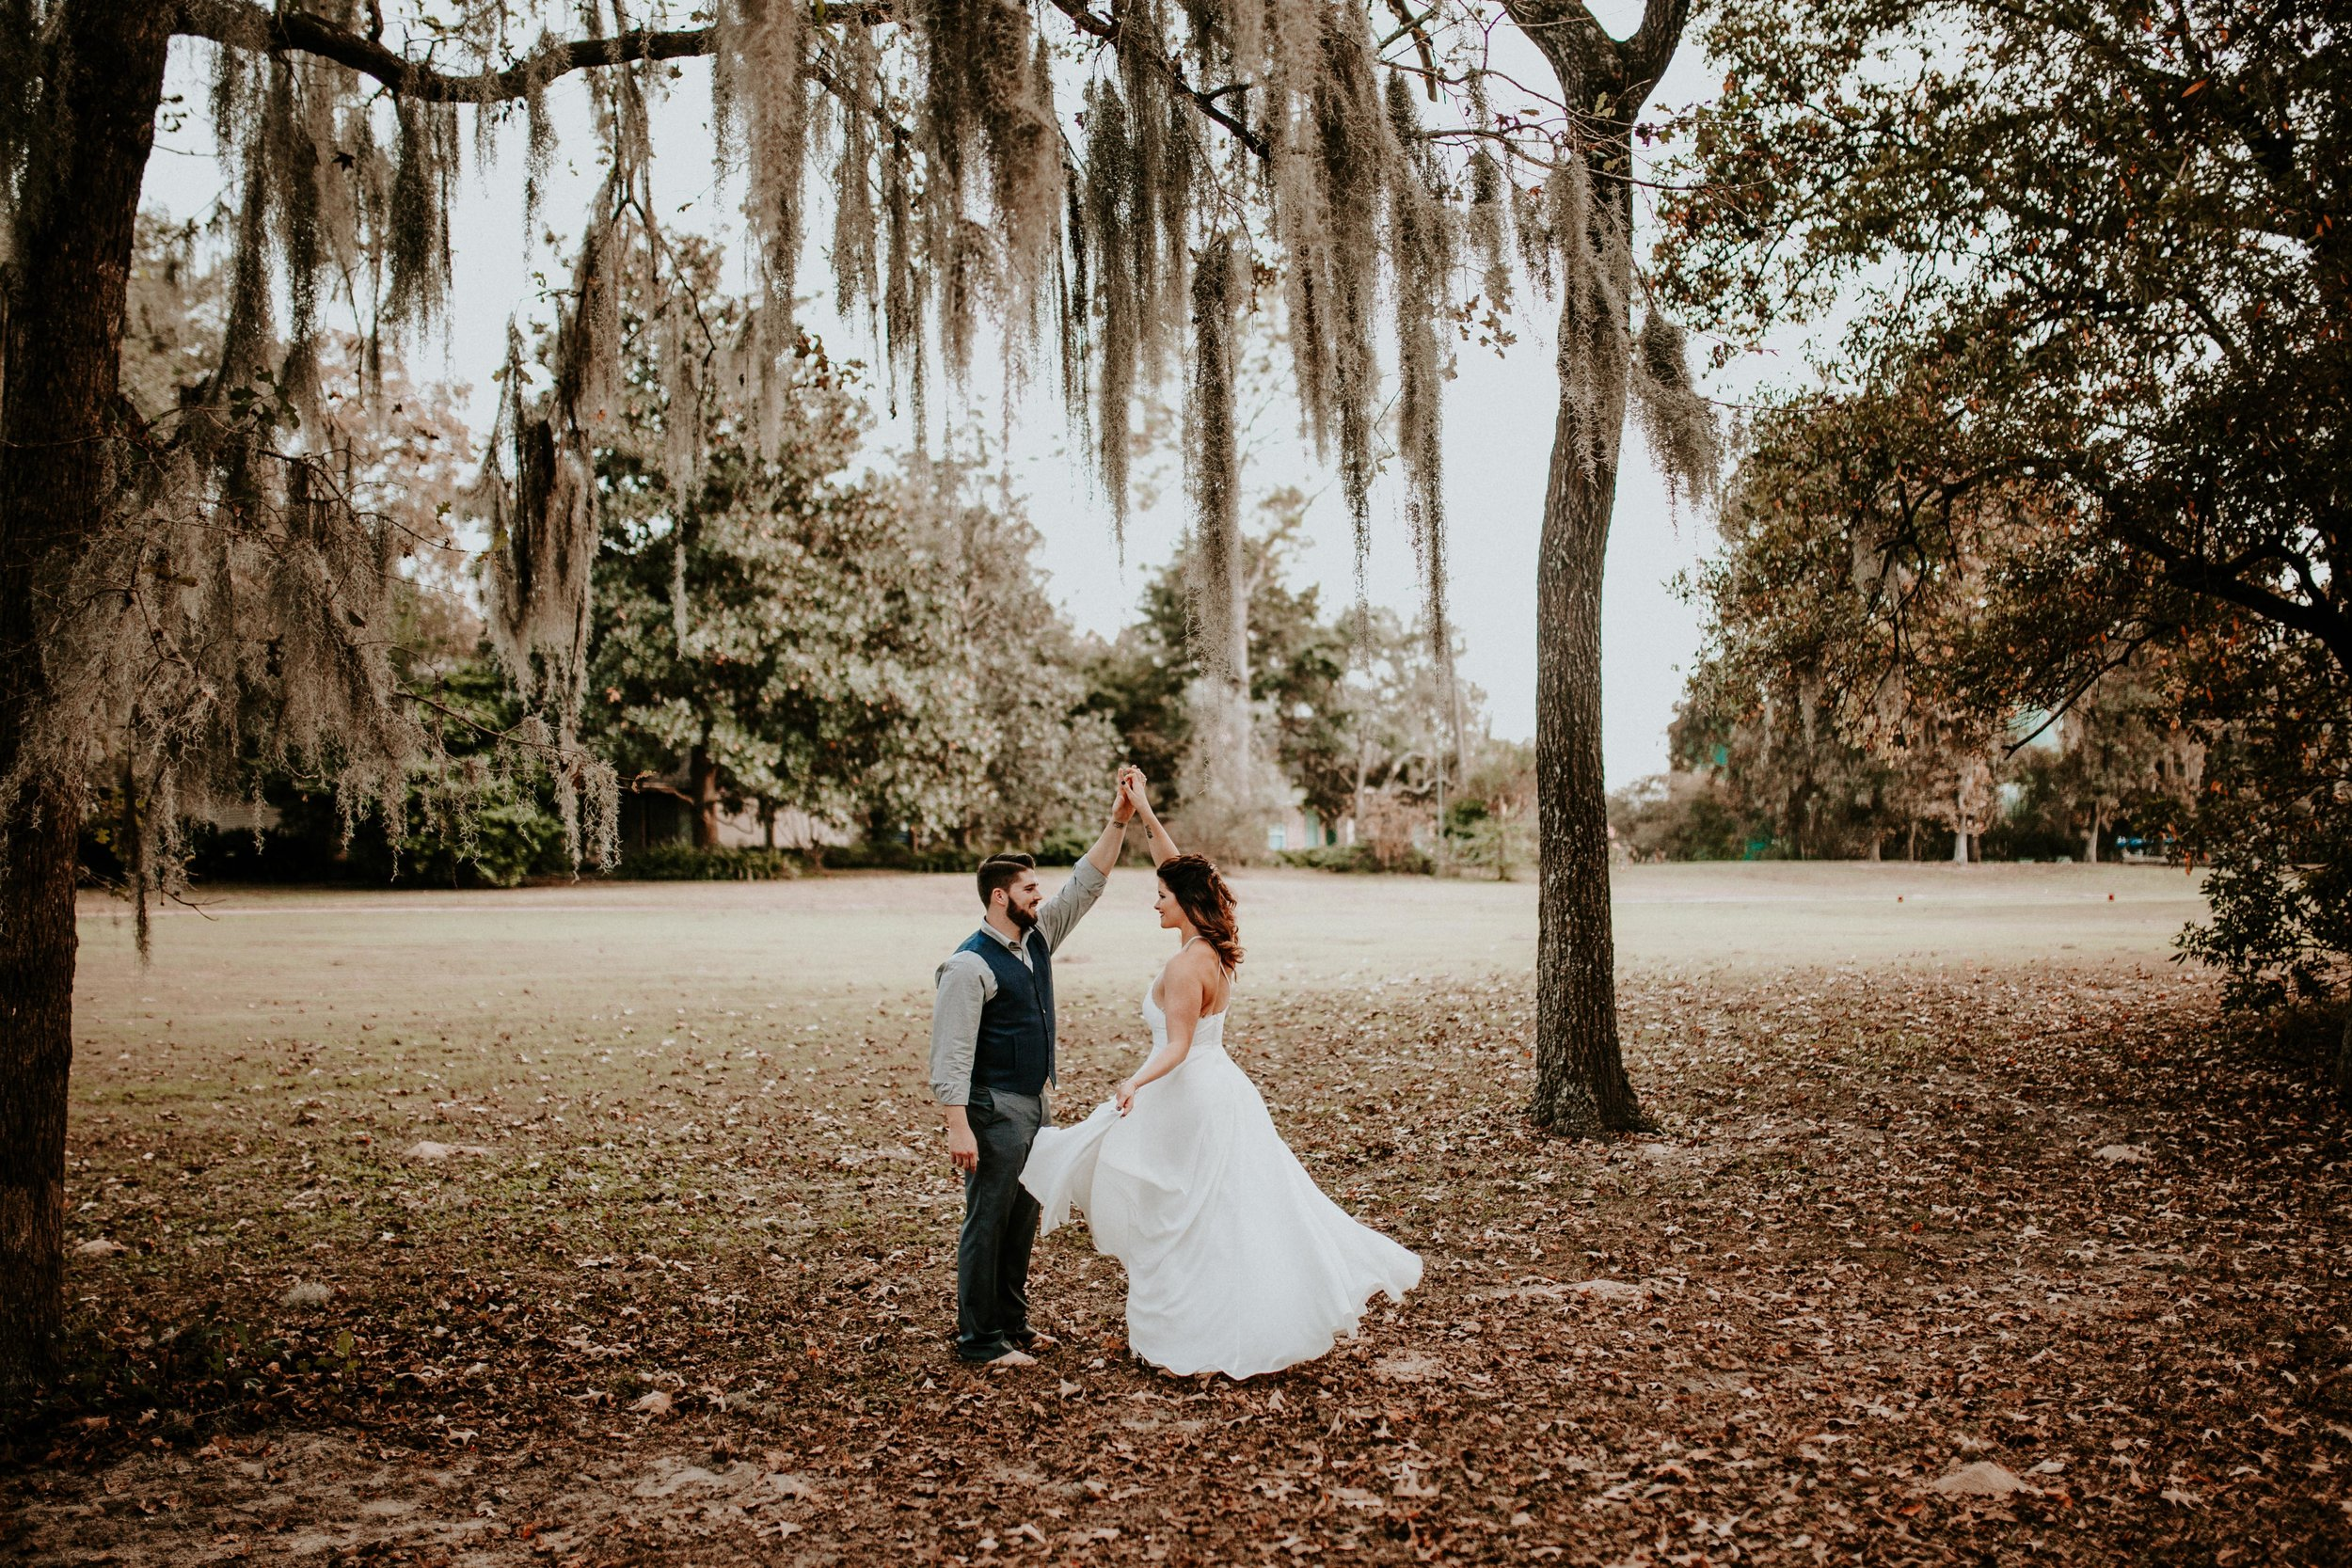 Vow Renewal in Magnolia Texas - Madeleine Frost Wedding Photographer - Sized for Blog-48.jpg